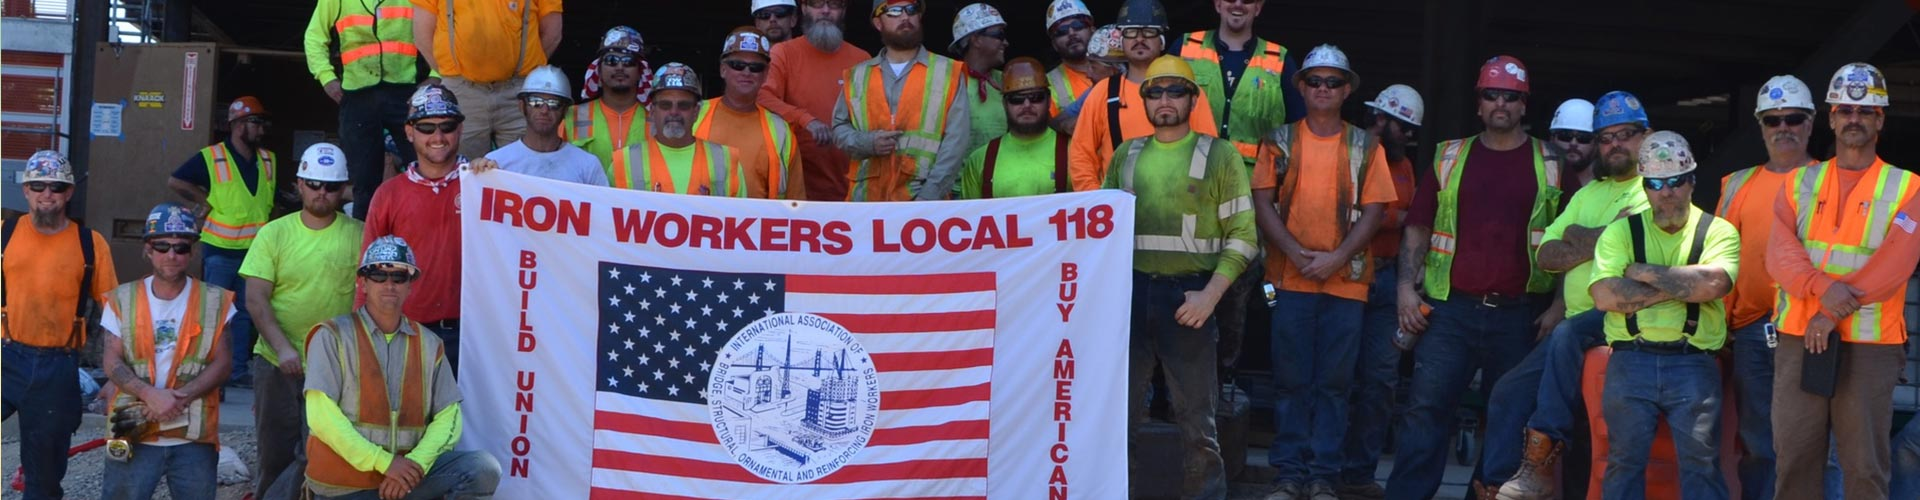 IronWorkers Local 118